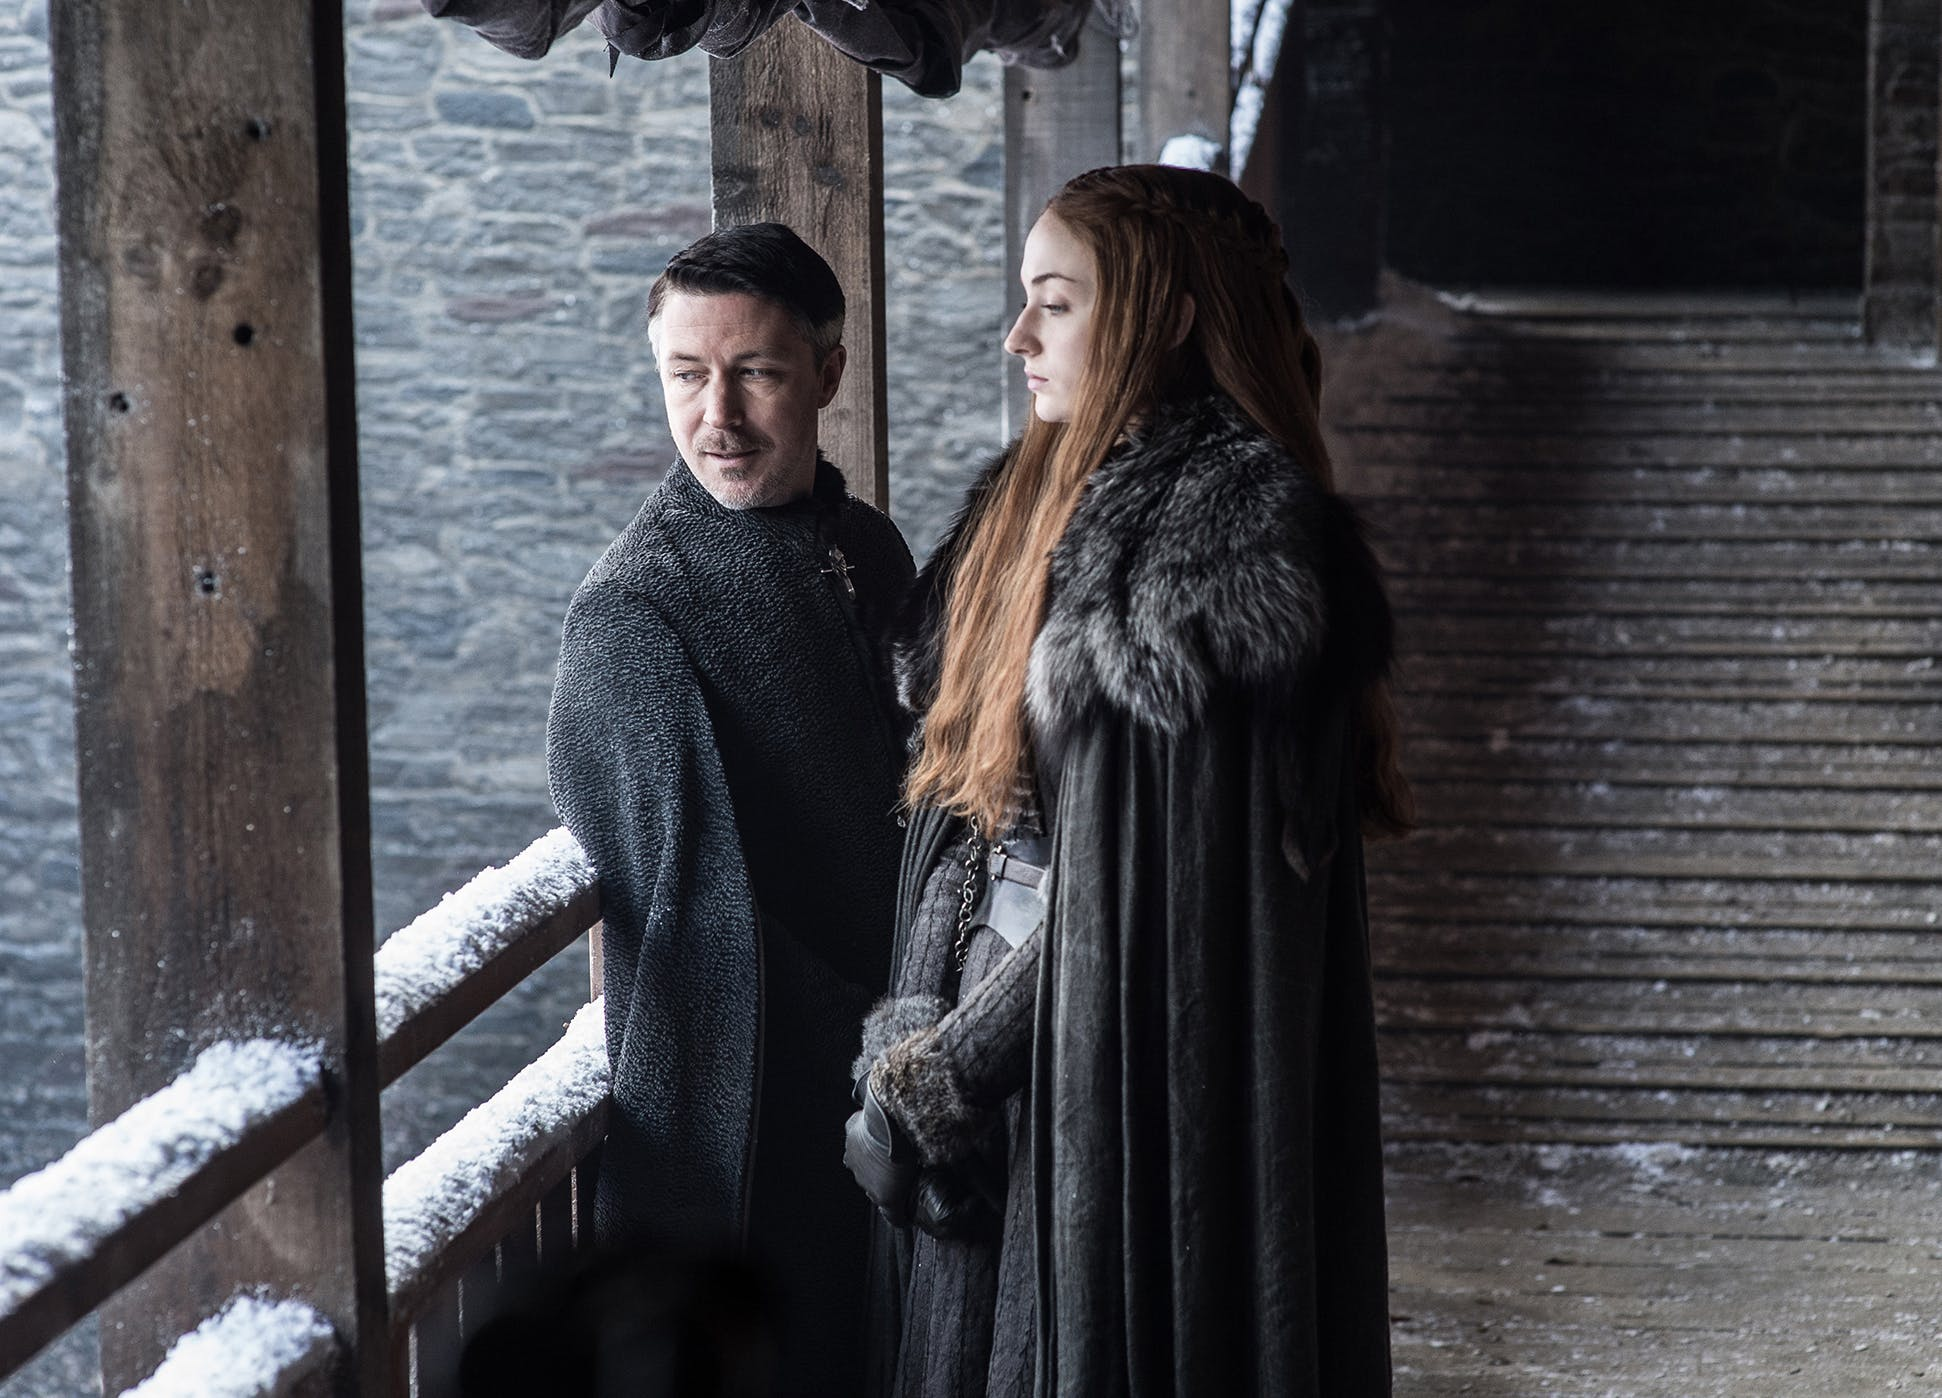 Aiden Gillen Sophie TurnerGame of thrones season 7